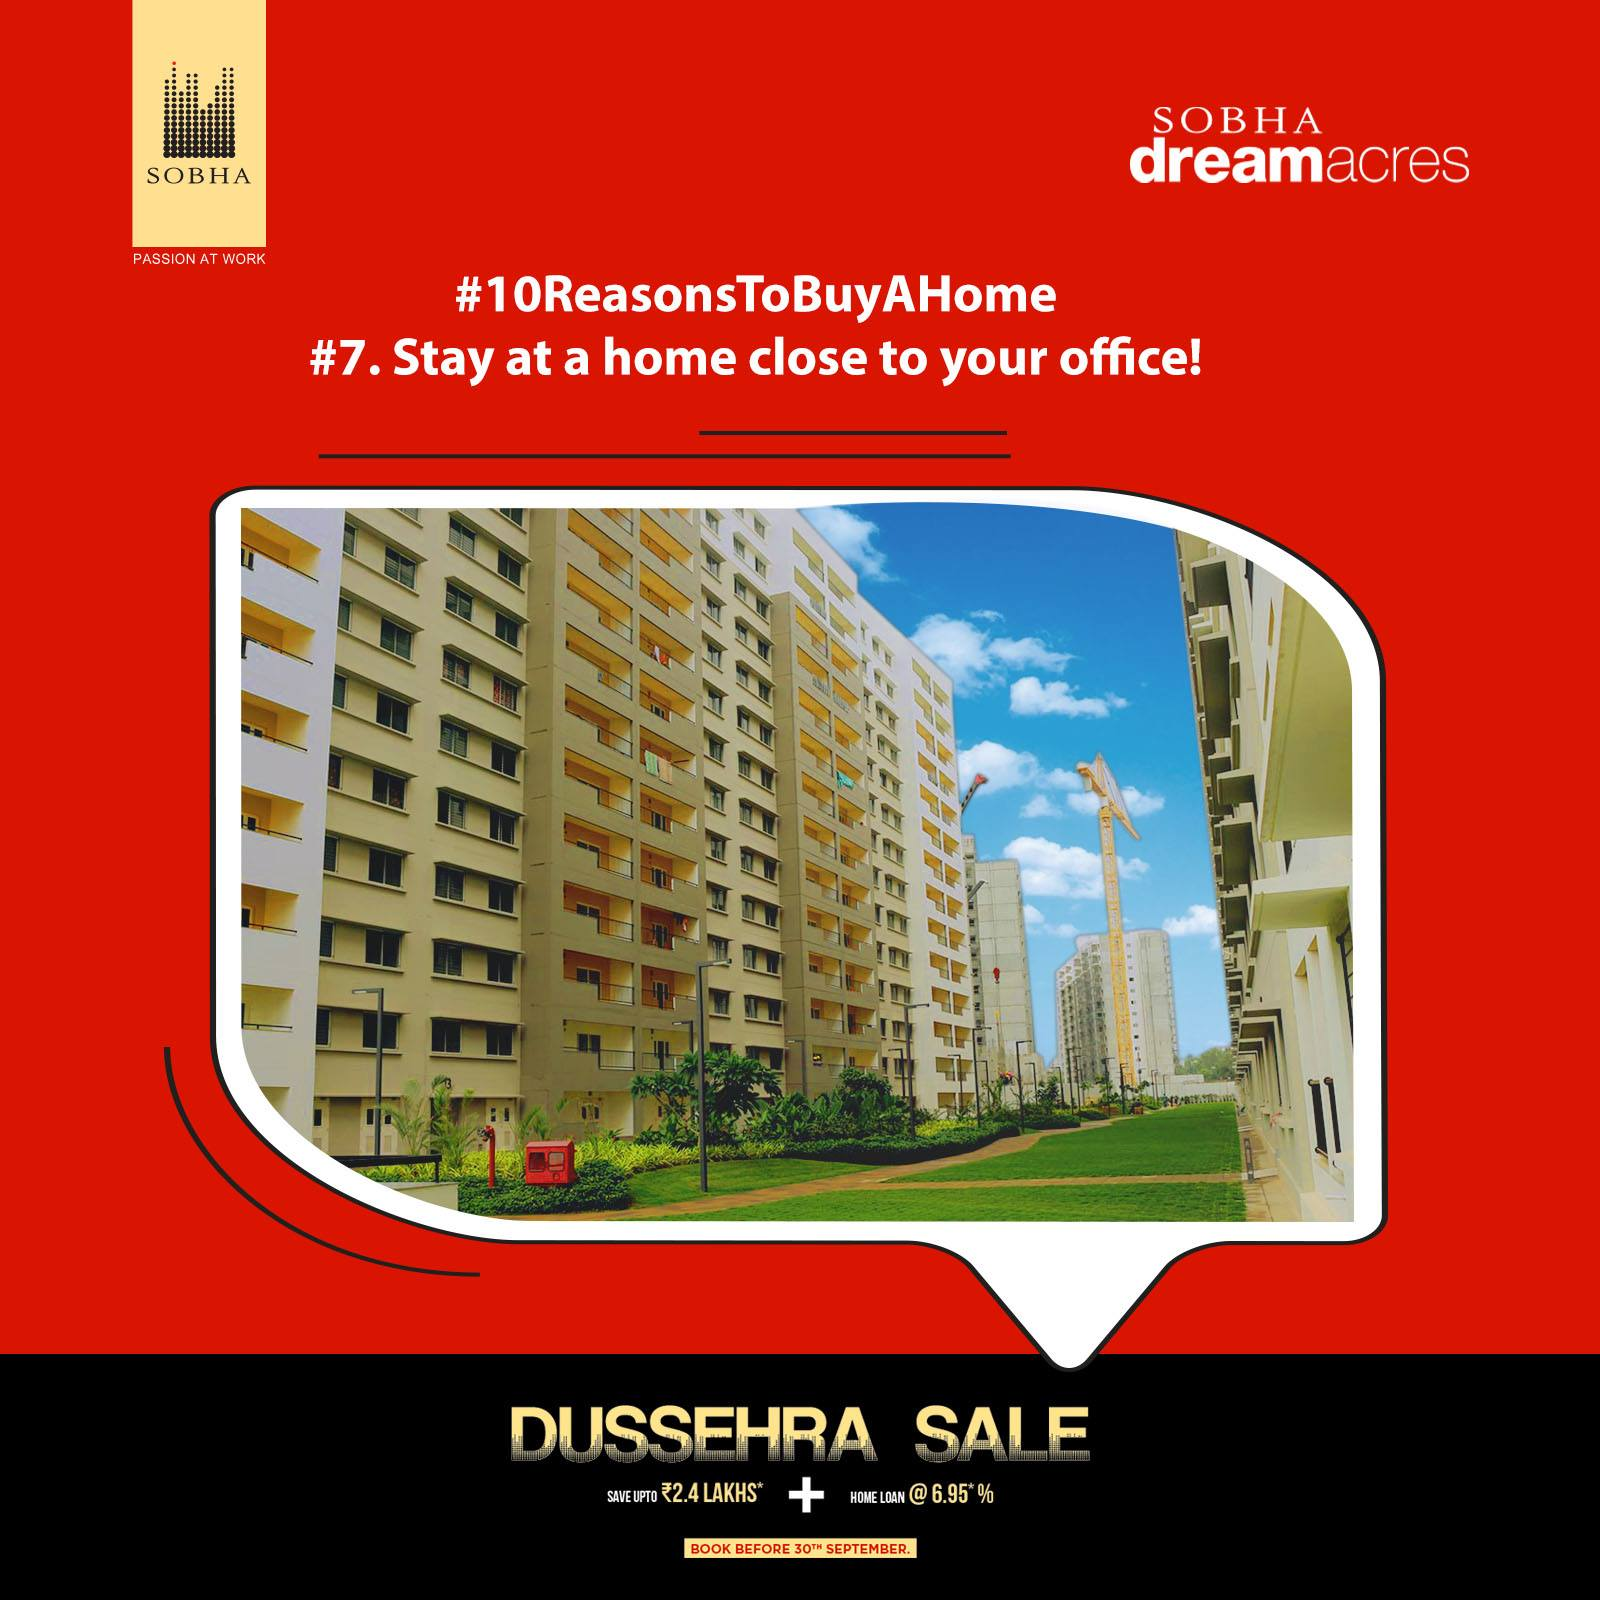 Real estate apartments - Sobhadream acres